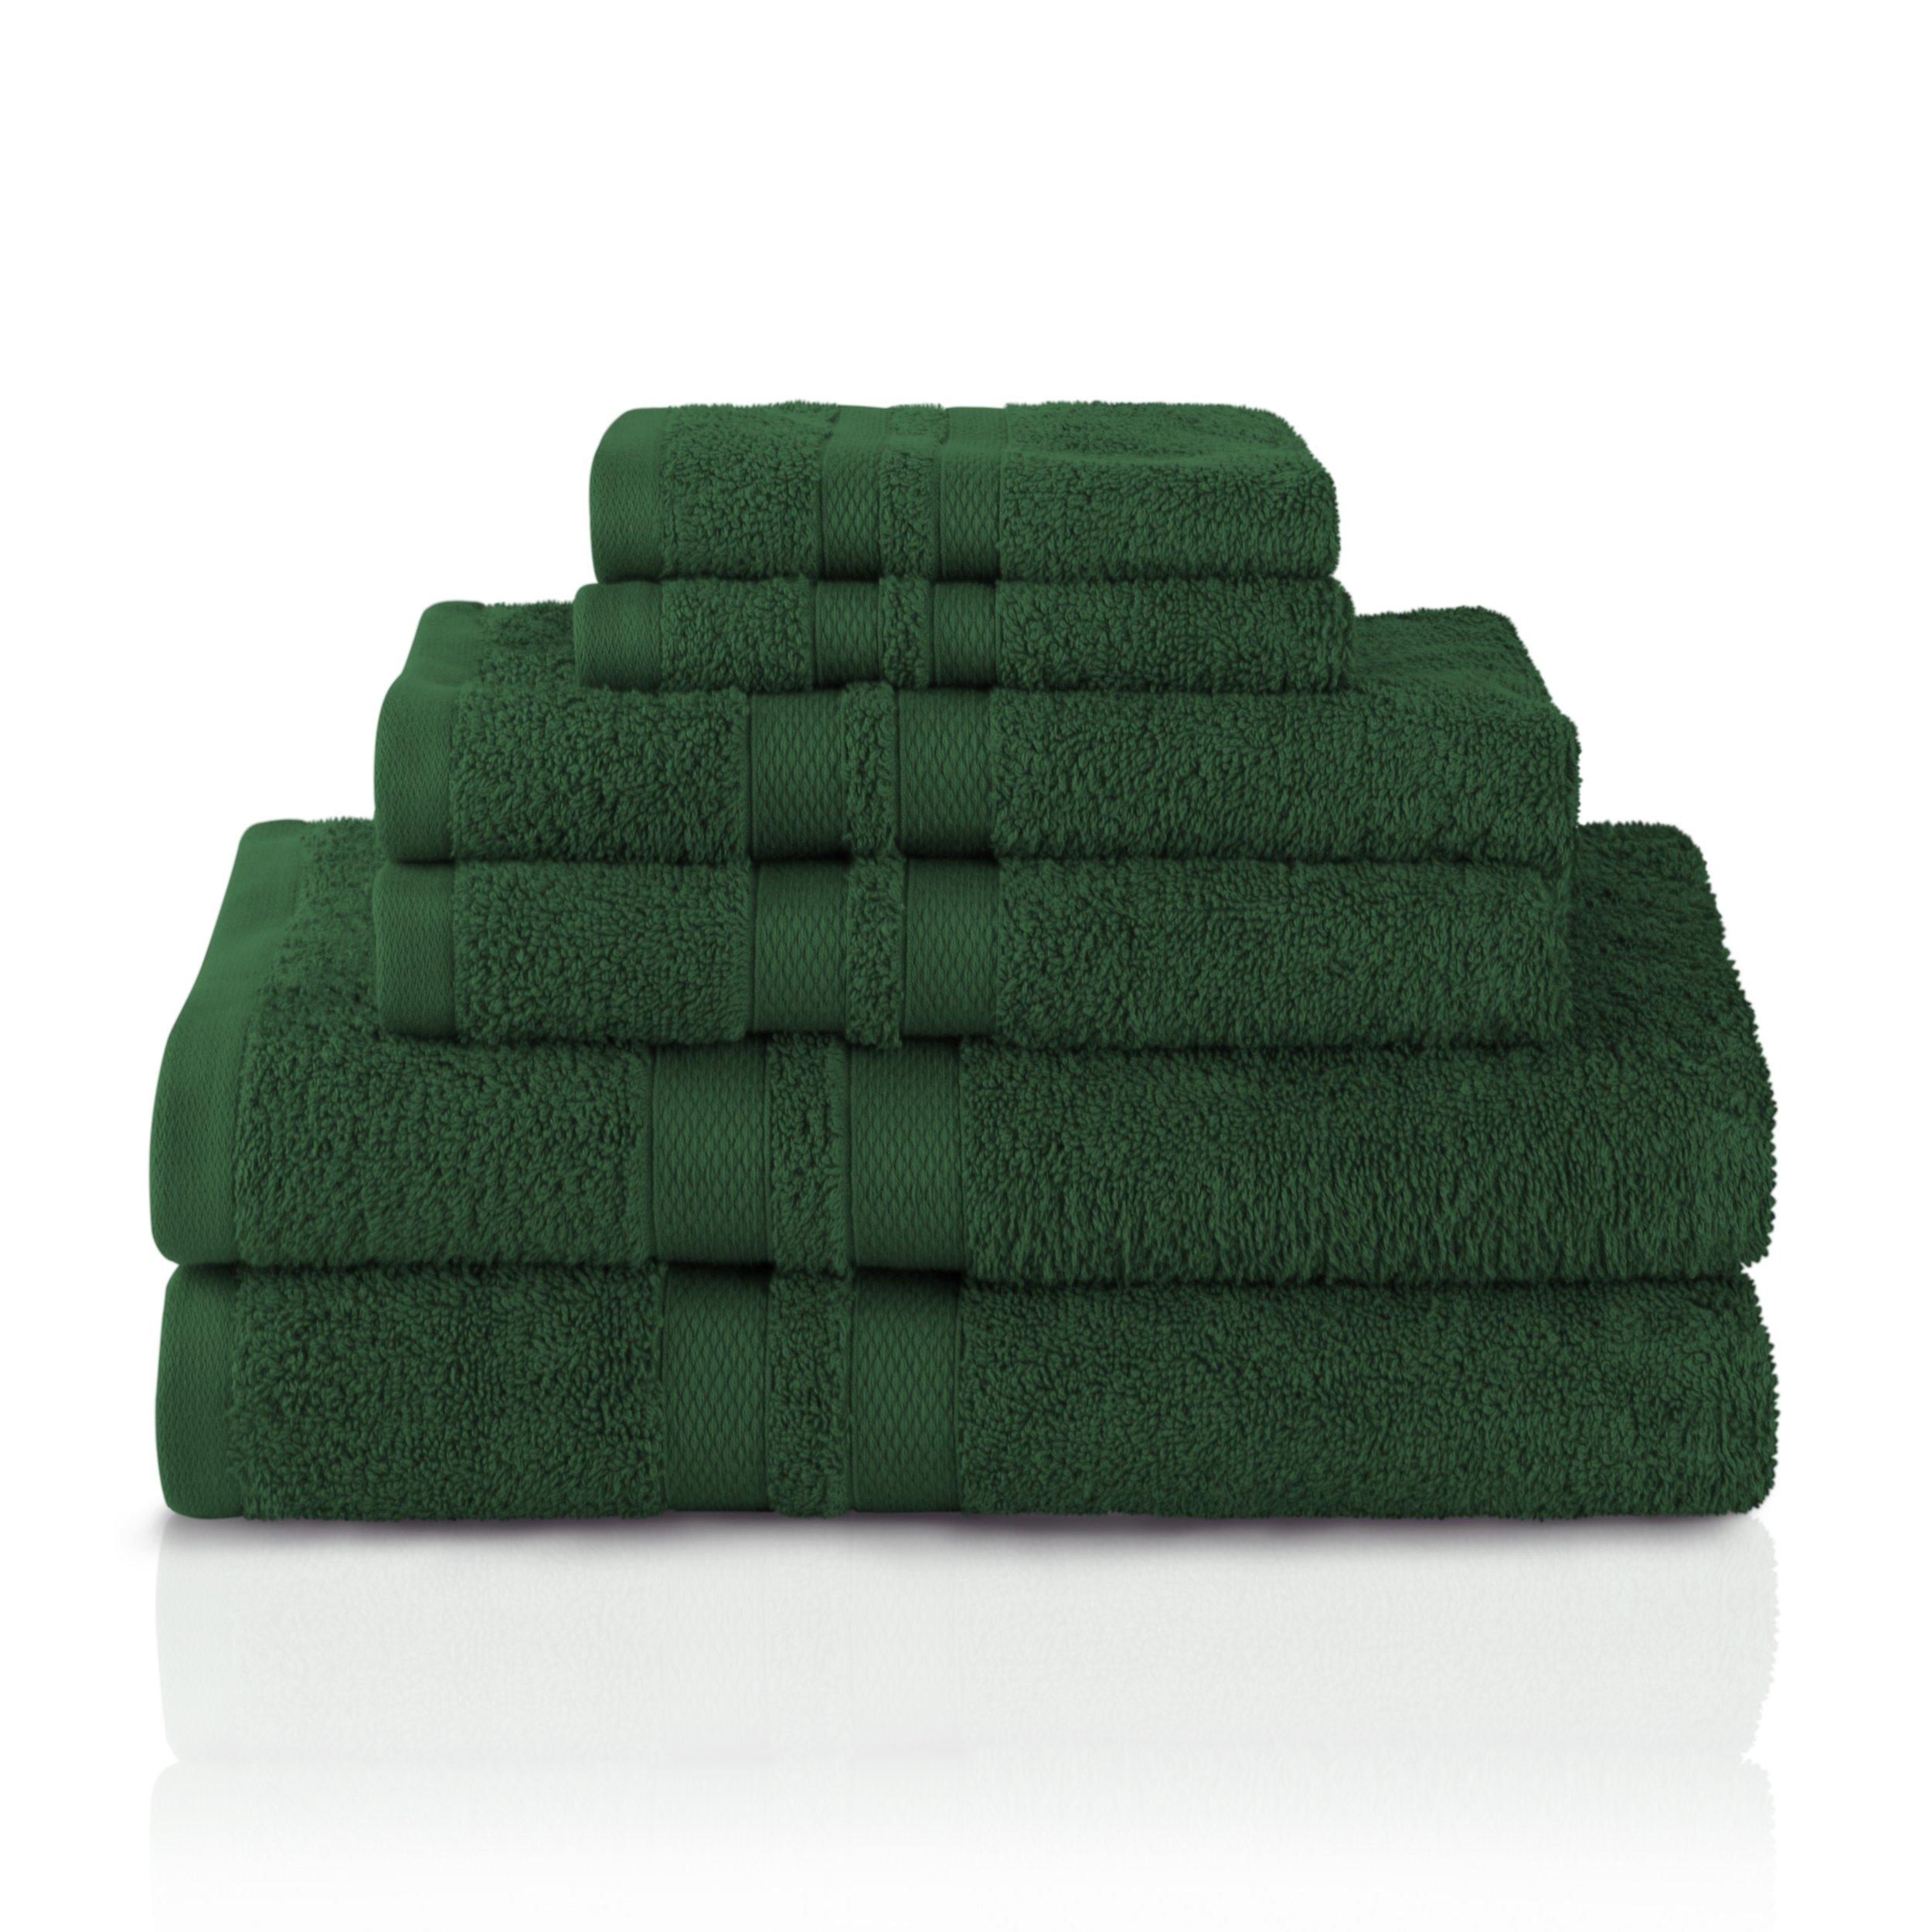 Superior 100% Premium Cotton Ultra Soft 6 Piece Towel Set, 2 Bath Towels, 2 Hand Towels, and 2 Washcloths with Unique Honeycomb Double Border, Forest Green